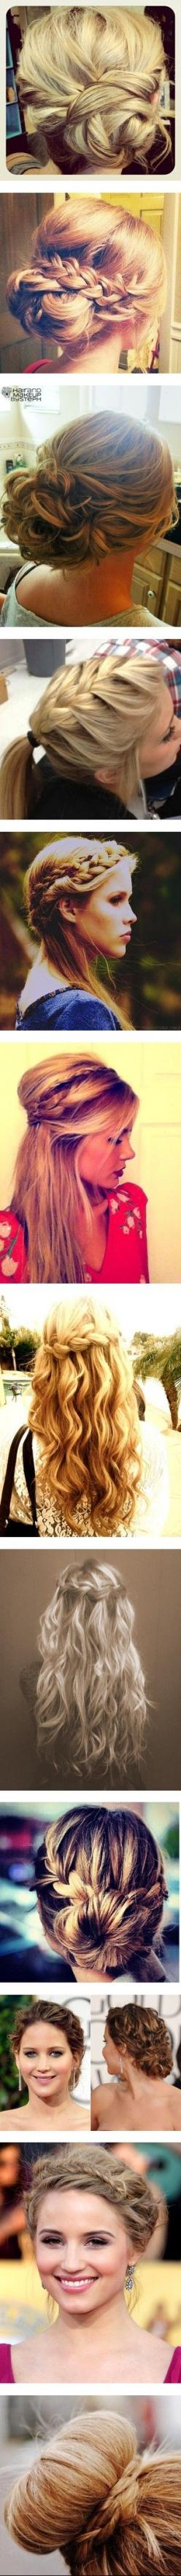 """Braided Hair Buns"" @Brittany Grimes @Betsy Caiazza @Taylor DeLuca @Sterling Cullen @Jennifer Horvath: Bridesmaid Updo Hairstyles, Hair Styles, Buns Hairstyle, Updos, Braided Hairstyles, Wedding Hairstyles, Hair Buns, Cute Hairstyles"